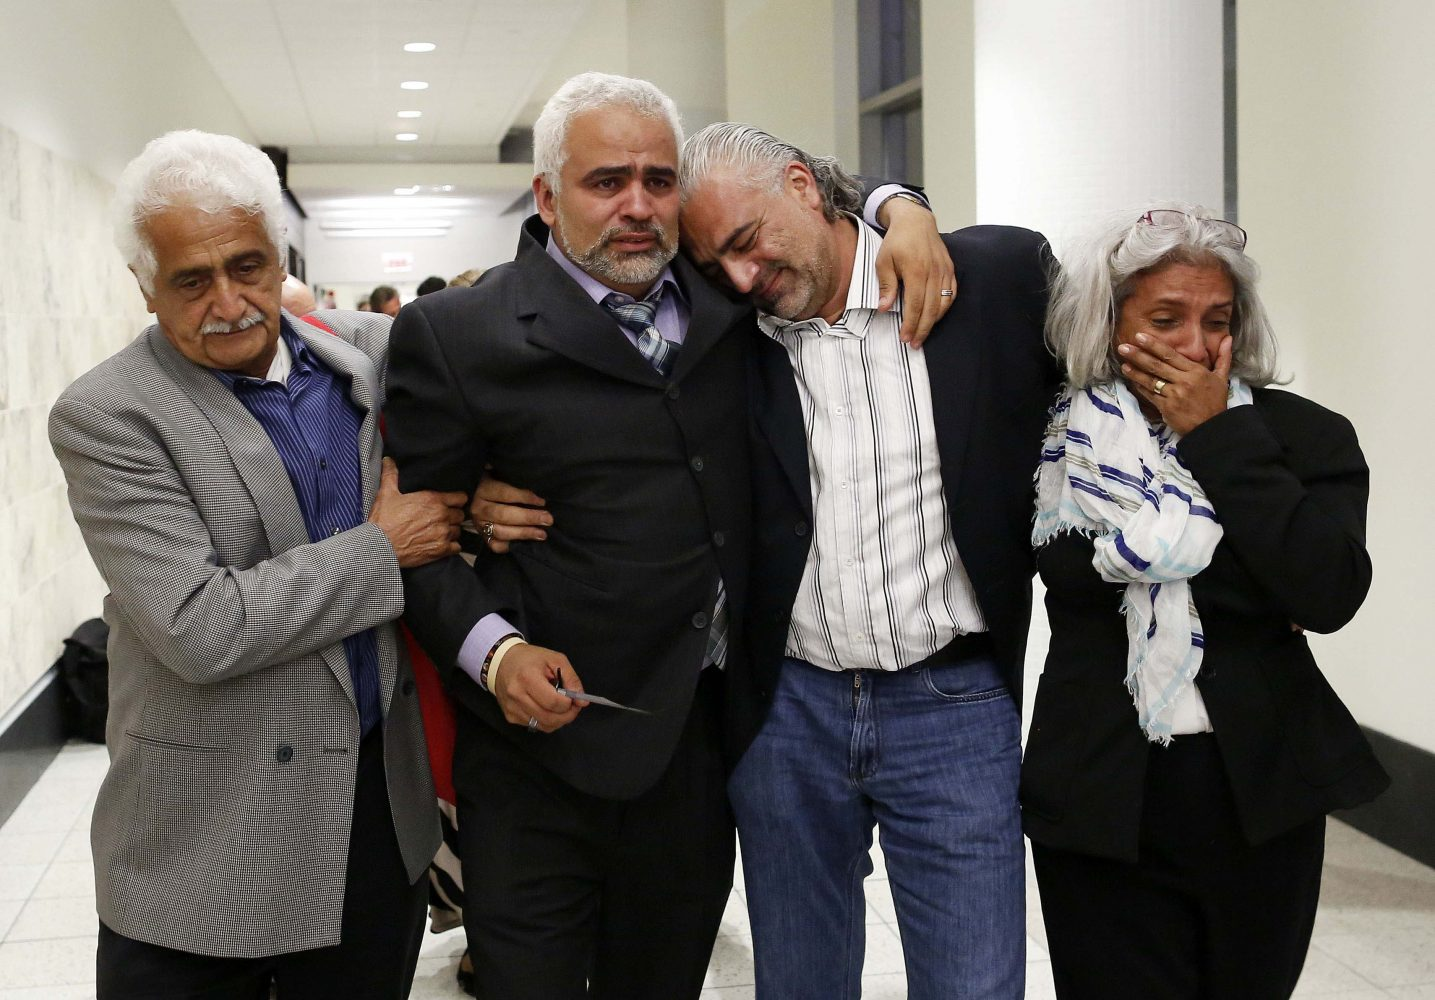 Carlos Aguilar, the father of slain University of Florida student Christian Aguilar, walks with his father Carlos, at left, his brother Diego Aguilar and Diego's wife Nasly, at right, after Pedro Bravo was found guilty of first degree murder and false imprisonment at the Alachua County Criminal Justice Center Friday, August 15, 2014. (Doug Finger/The Gainesville Sun/Pool)